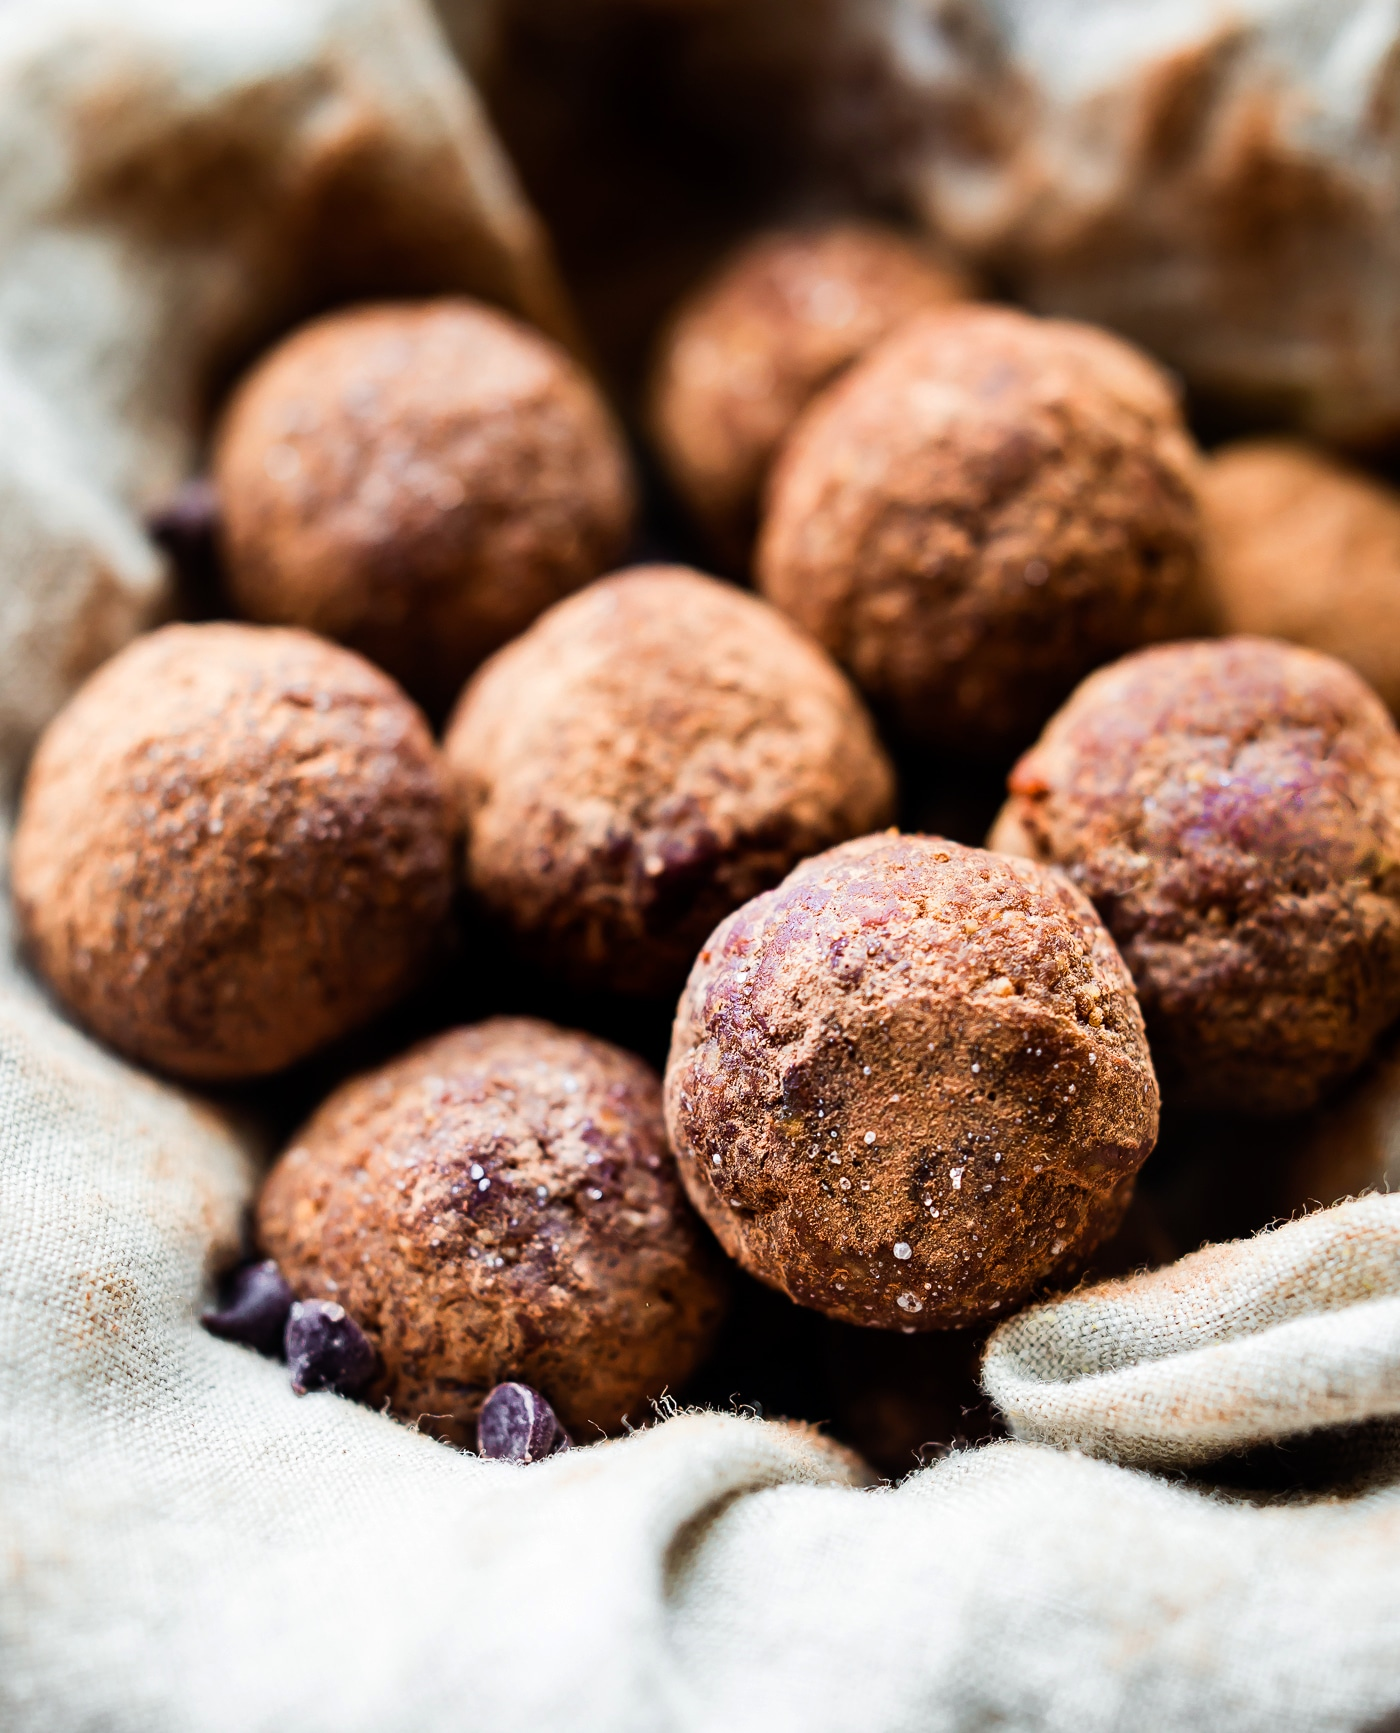 Chocolate Chewy Energy Bites made right in your blender! These dark chocolate energy bites are easy to make, sweet, chewy, and absolutely delicious! Paleo, Vegan, and Whole 30 friendly! An energizing chewy snack that perfect for anytime of day!